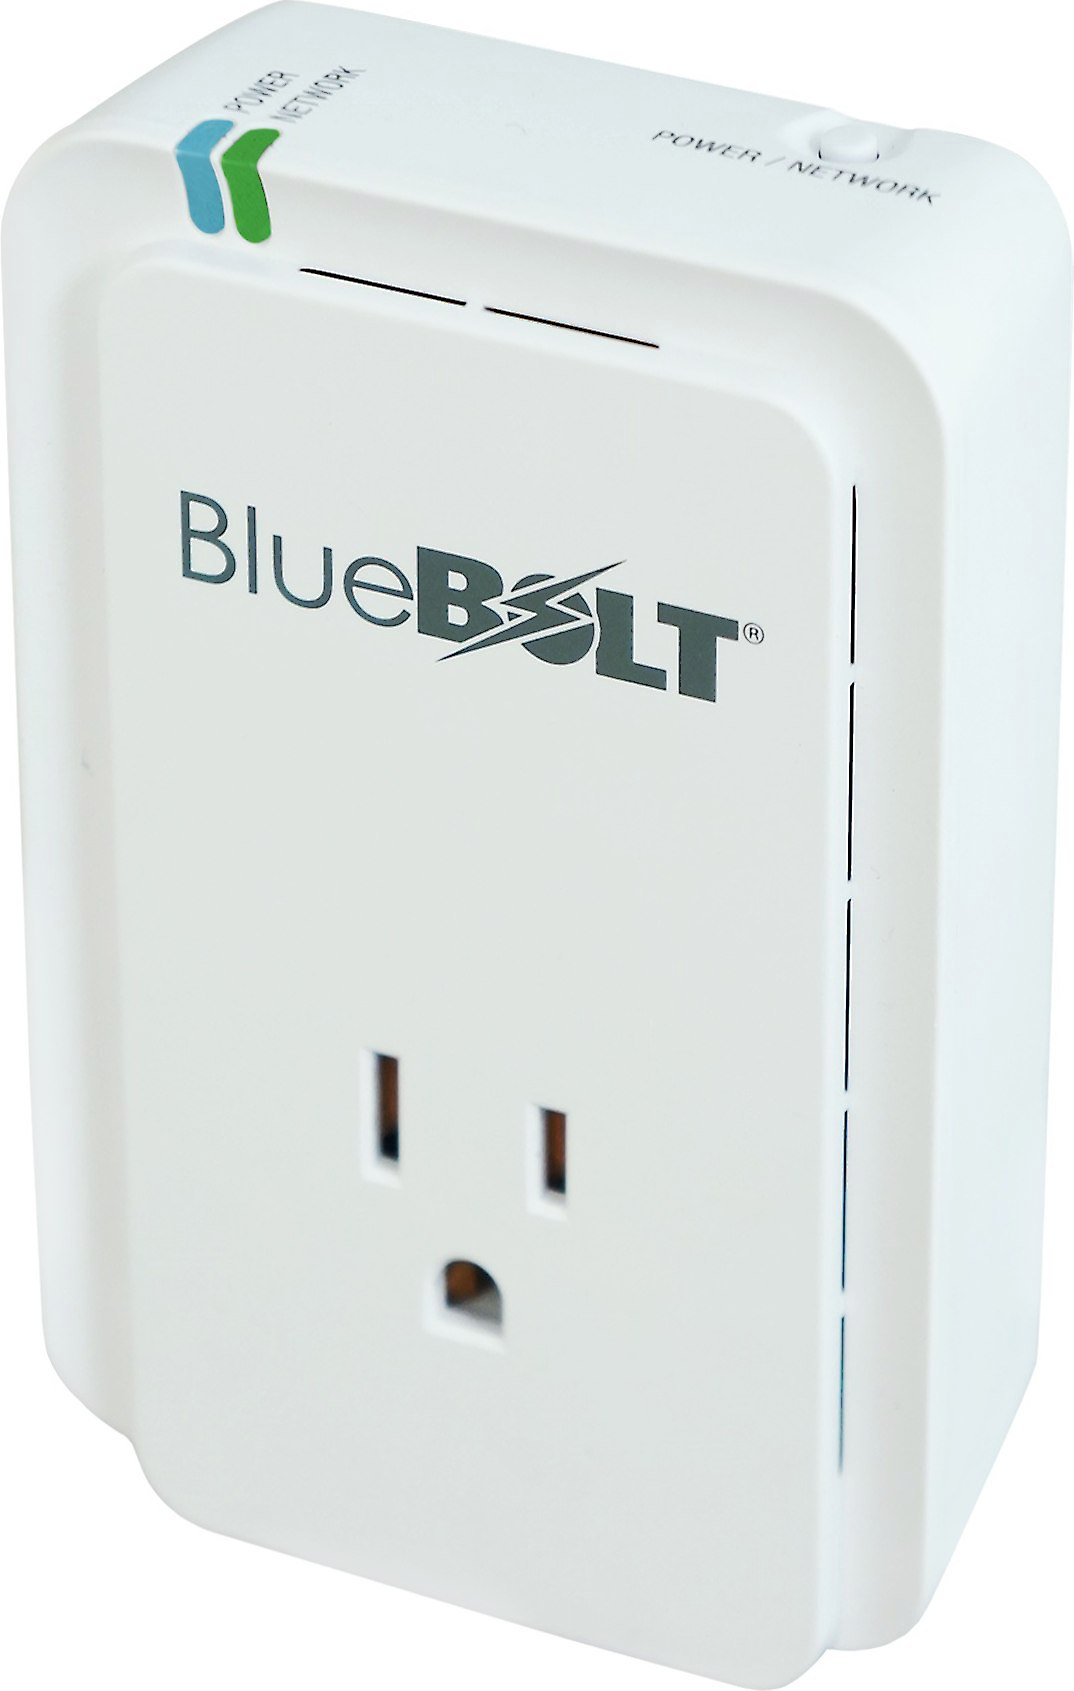 Panamax SP-1000 2-outlet SmartPlug with BlueBOLT® technology for  cloud-based power and energy management at Crutchfield